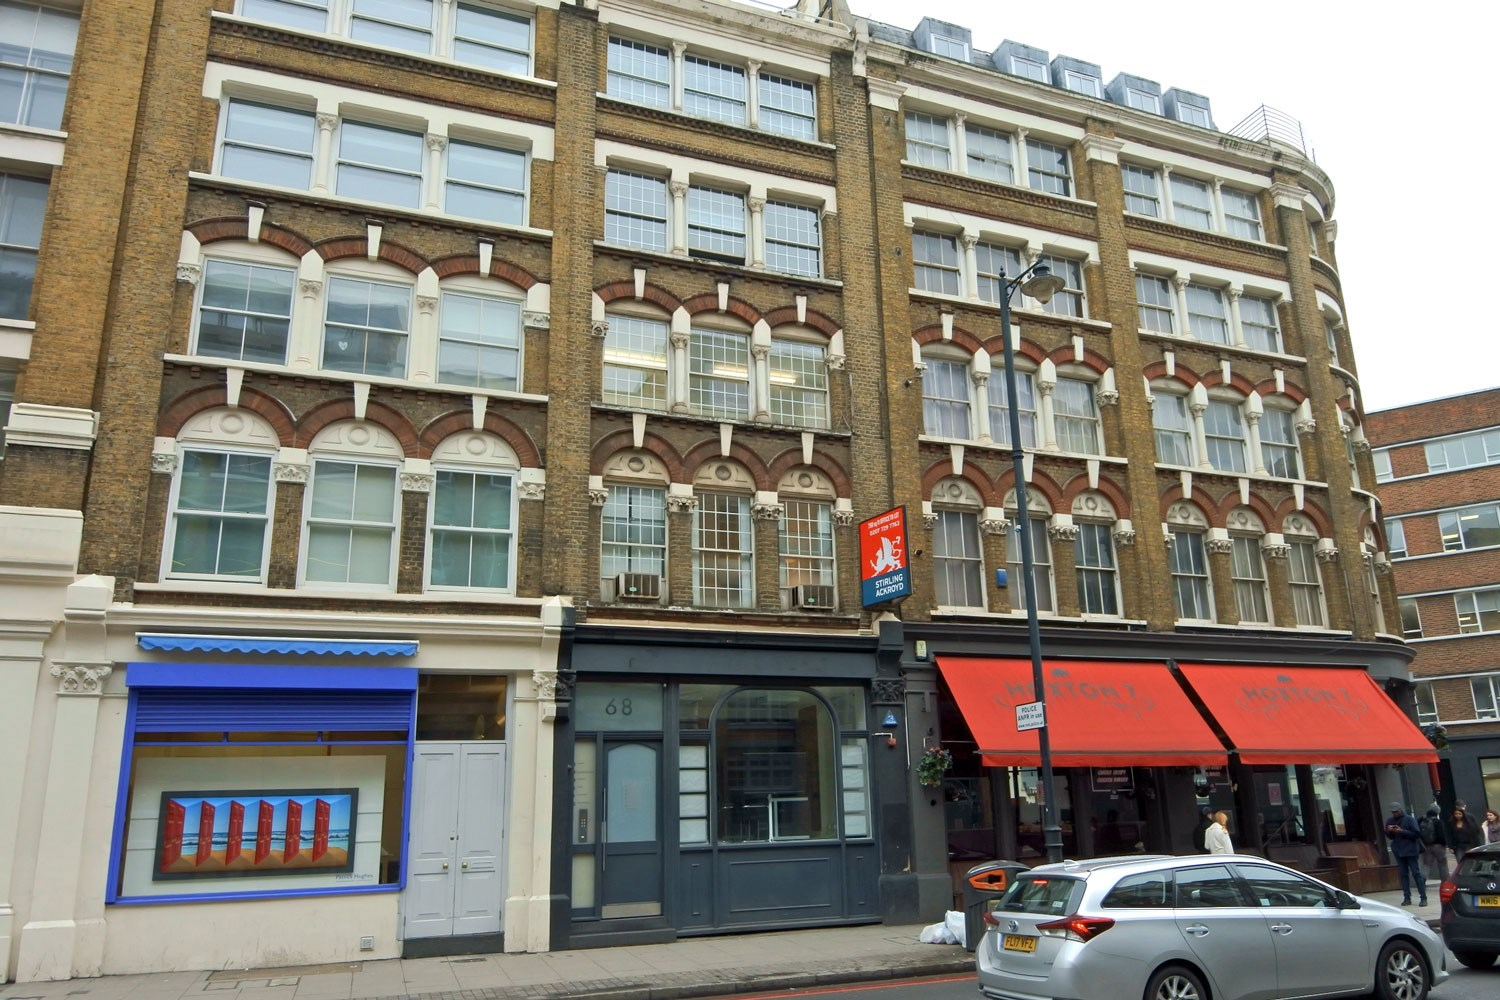 68 Great Eastern Street Shoreditch EC2A 3JT Office For Rent External 3